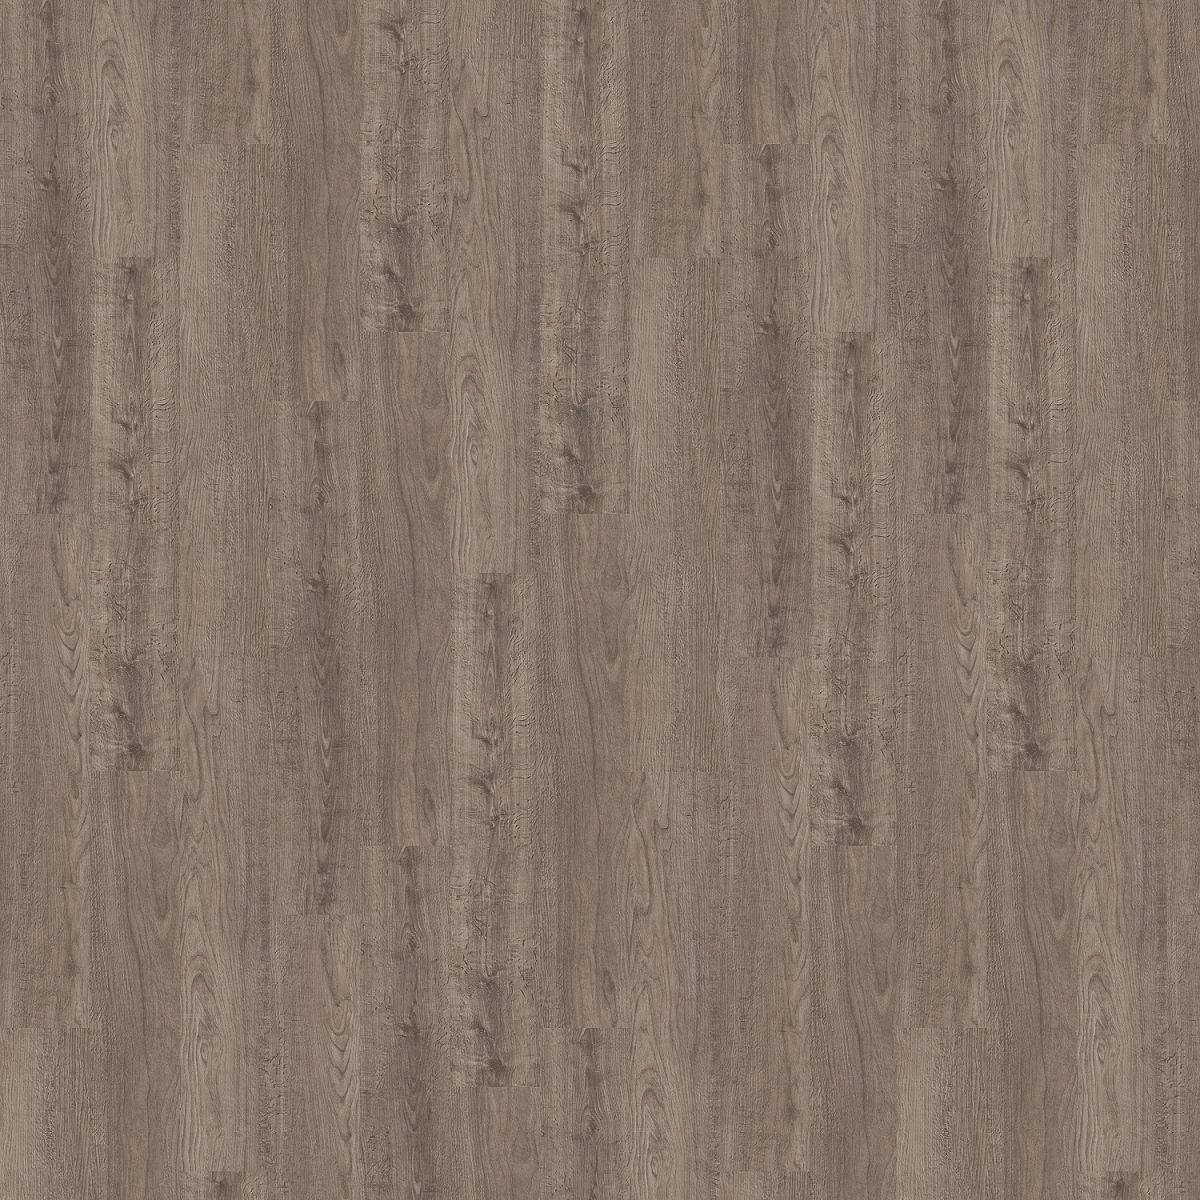 Mohawk tailor made rockport grey 12 mil click vinyl flooring for Mohawk vinyl flooring